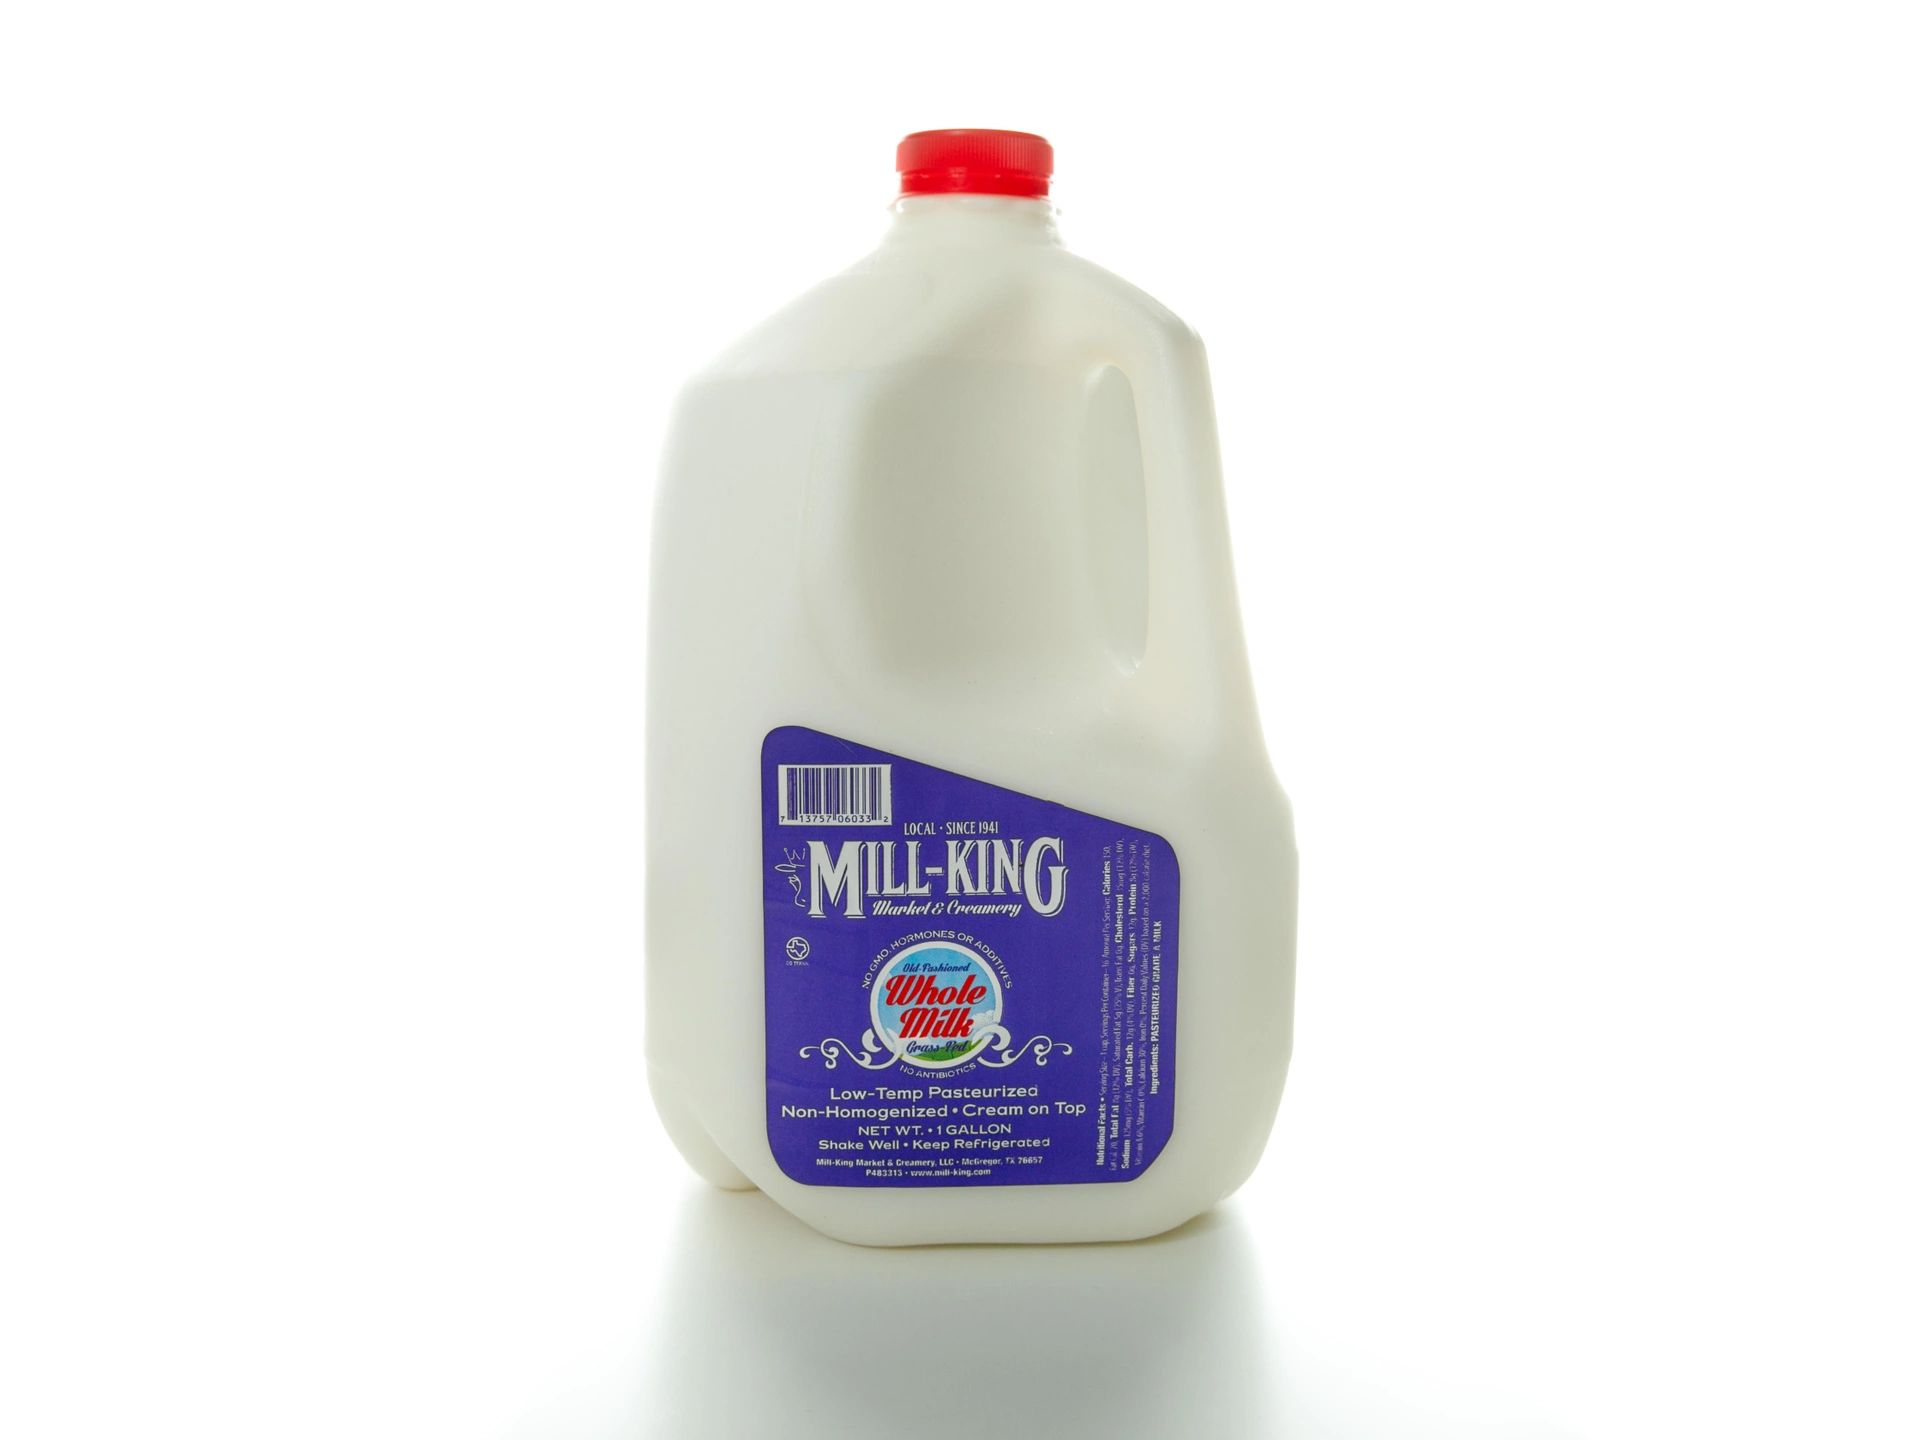 1920x1440 Whole Milk From Mill King Creamery Field To Meal